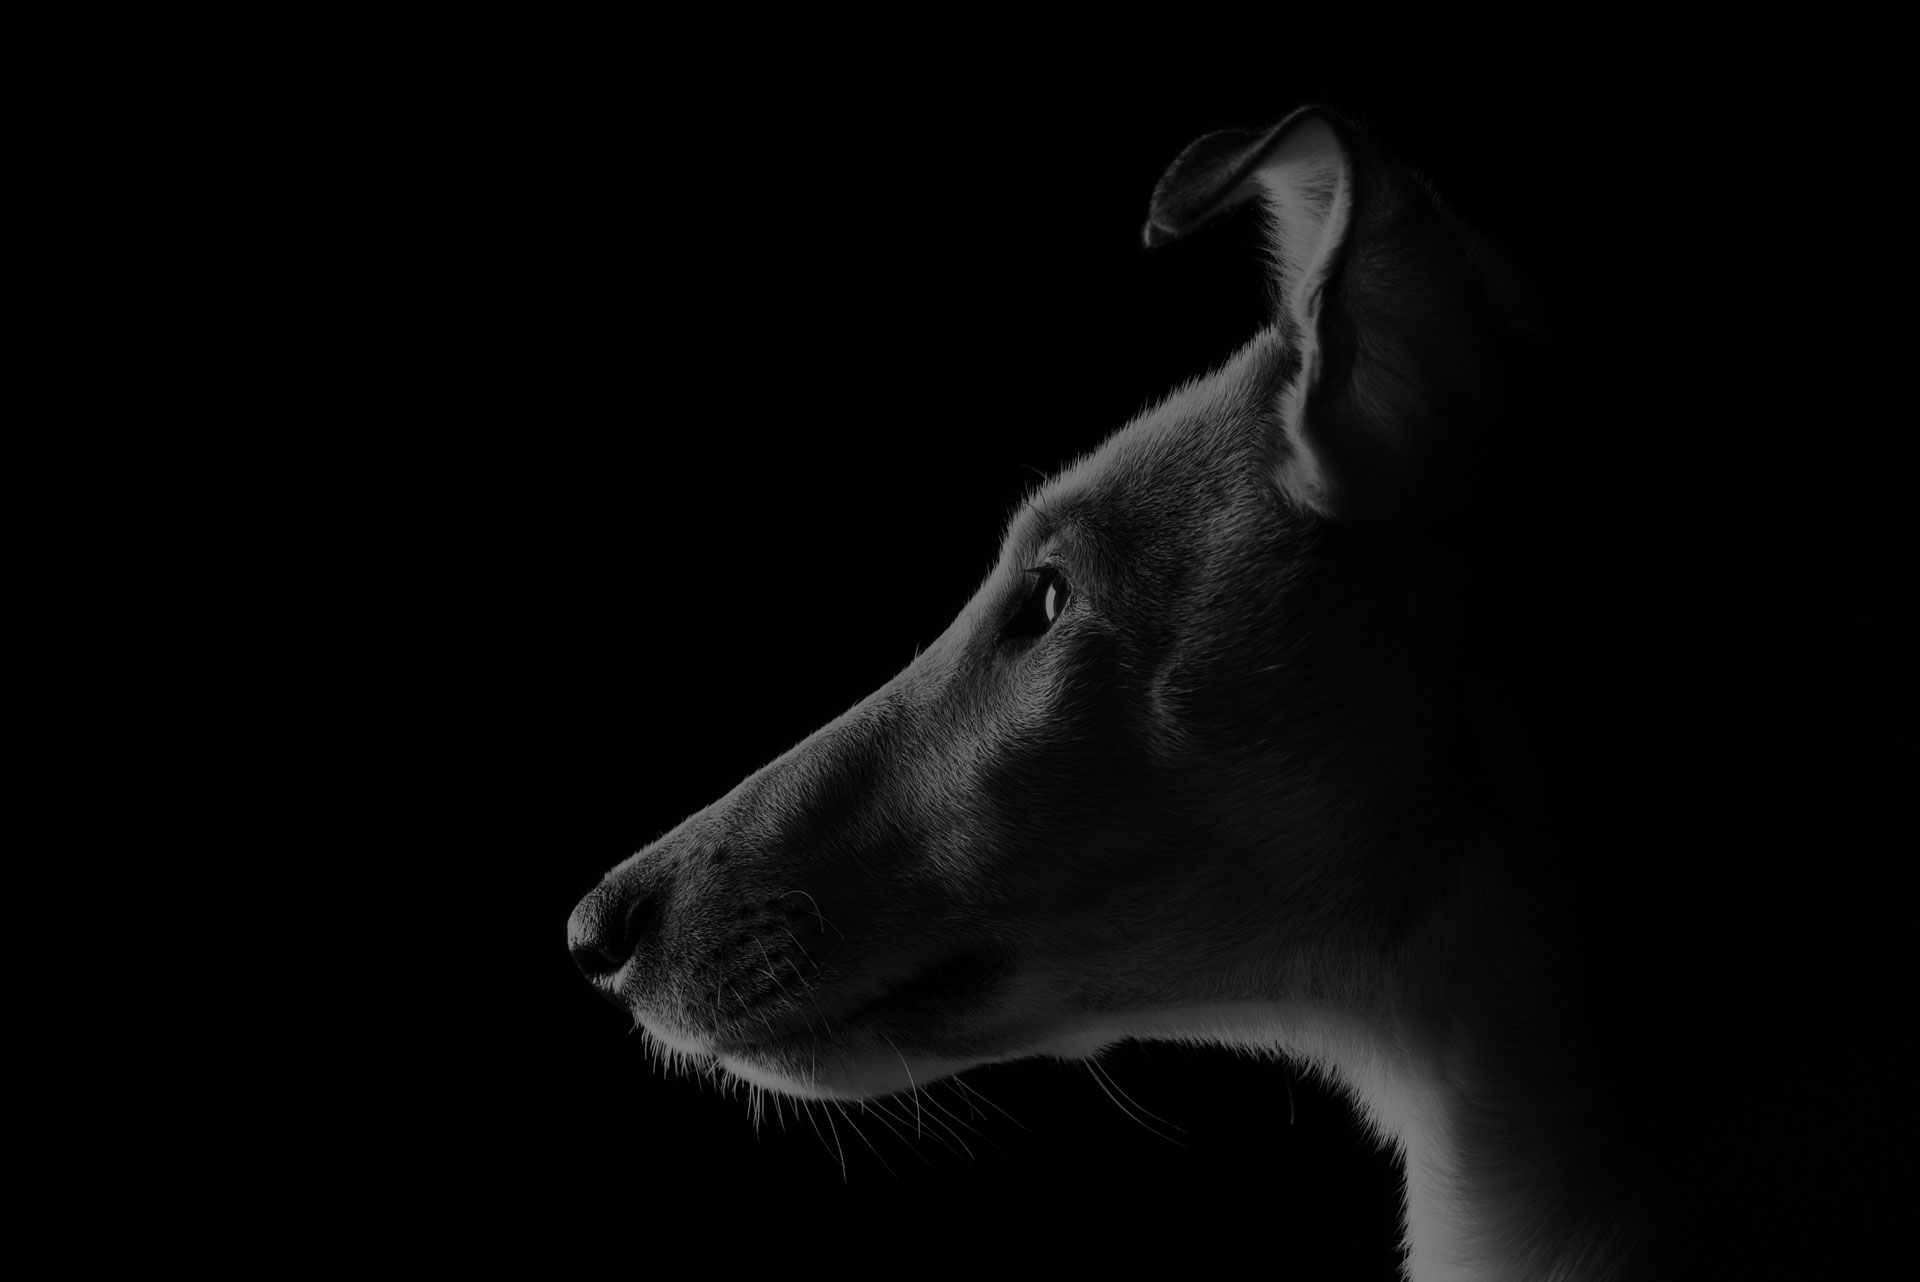 Studio portrait of a young smooth collie in black and white with black background - Image